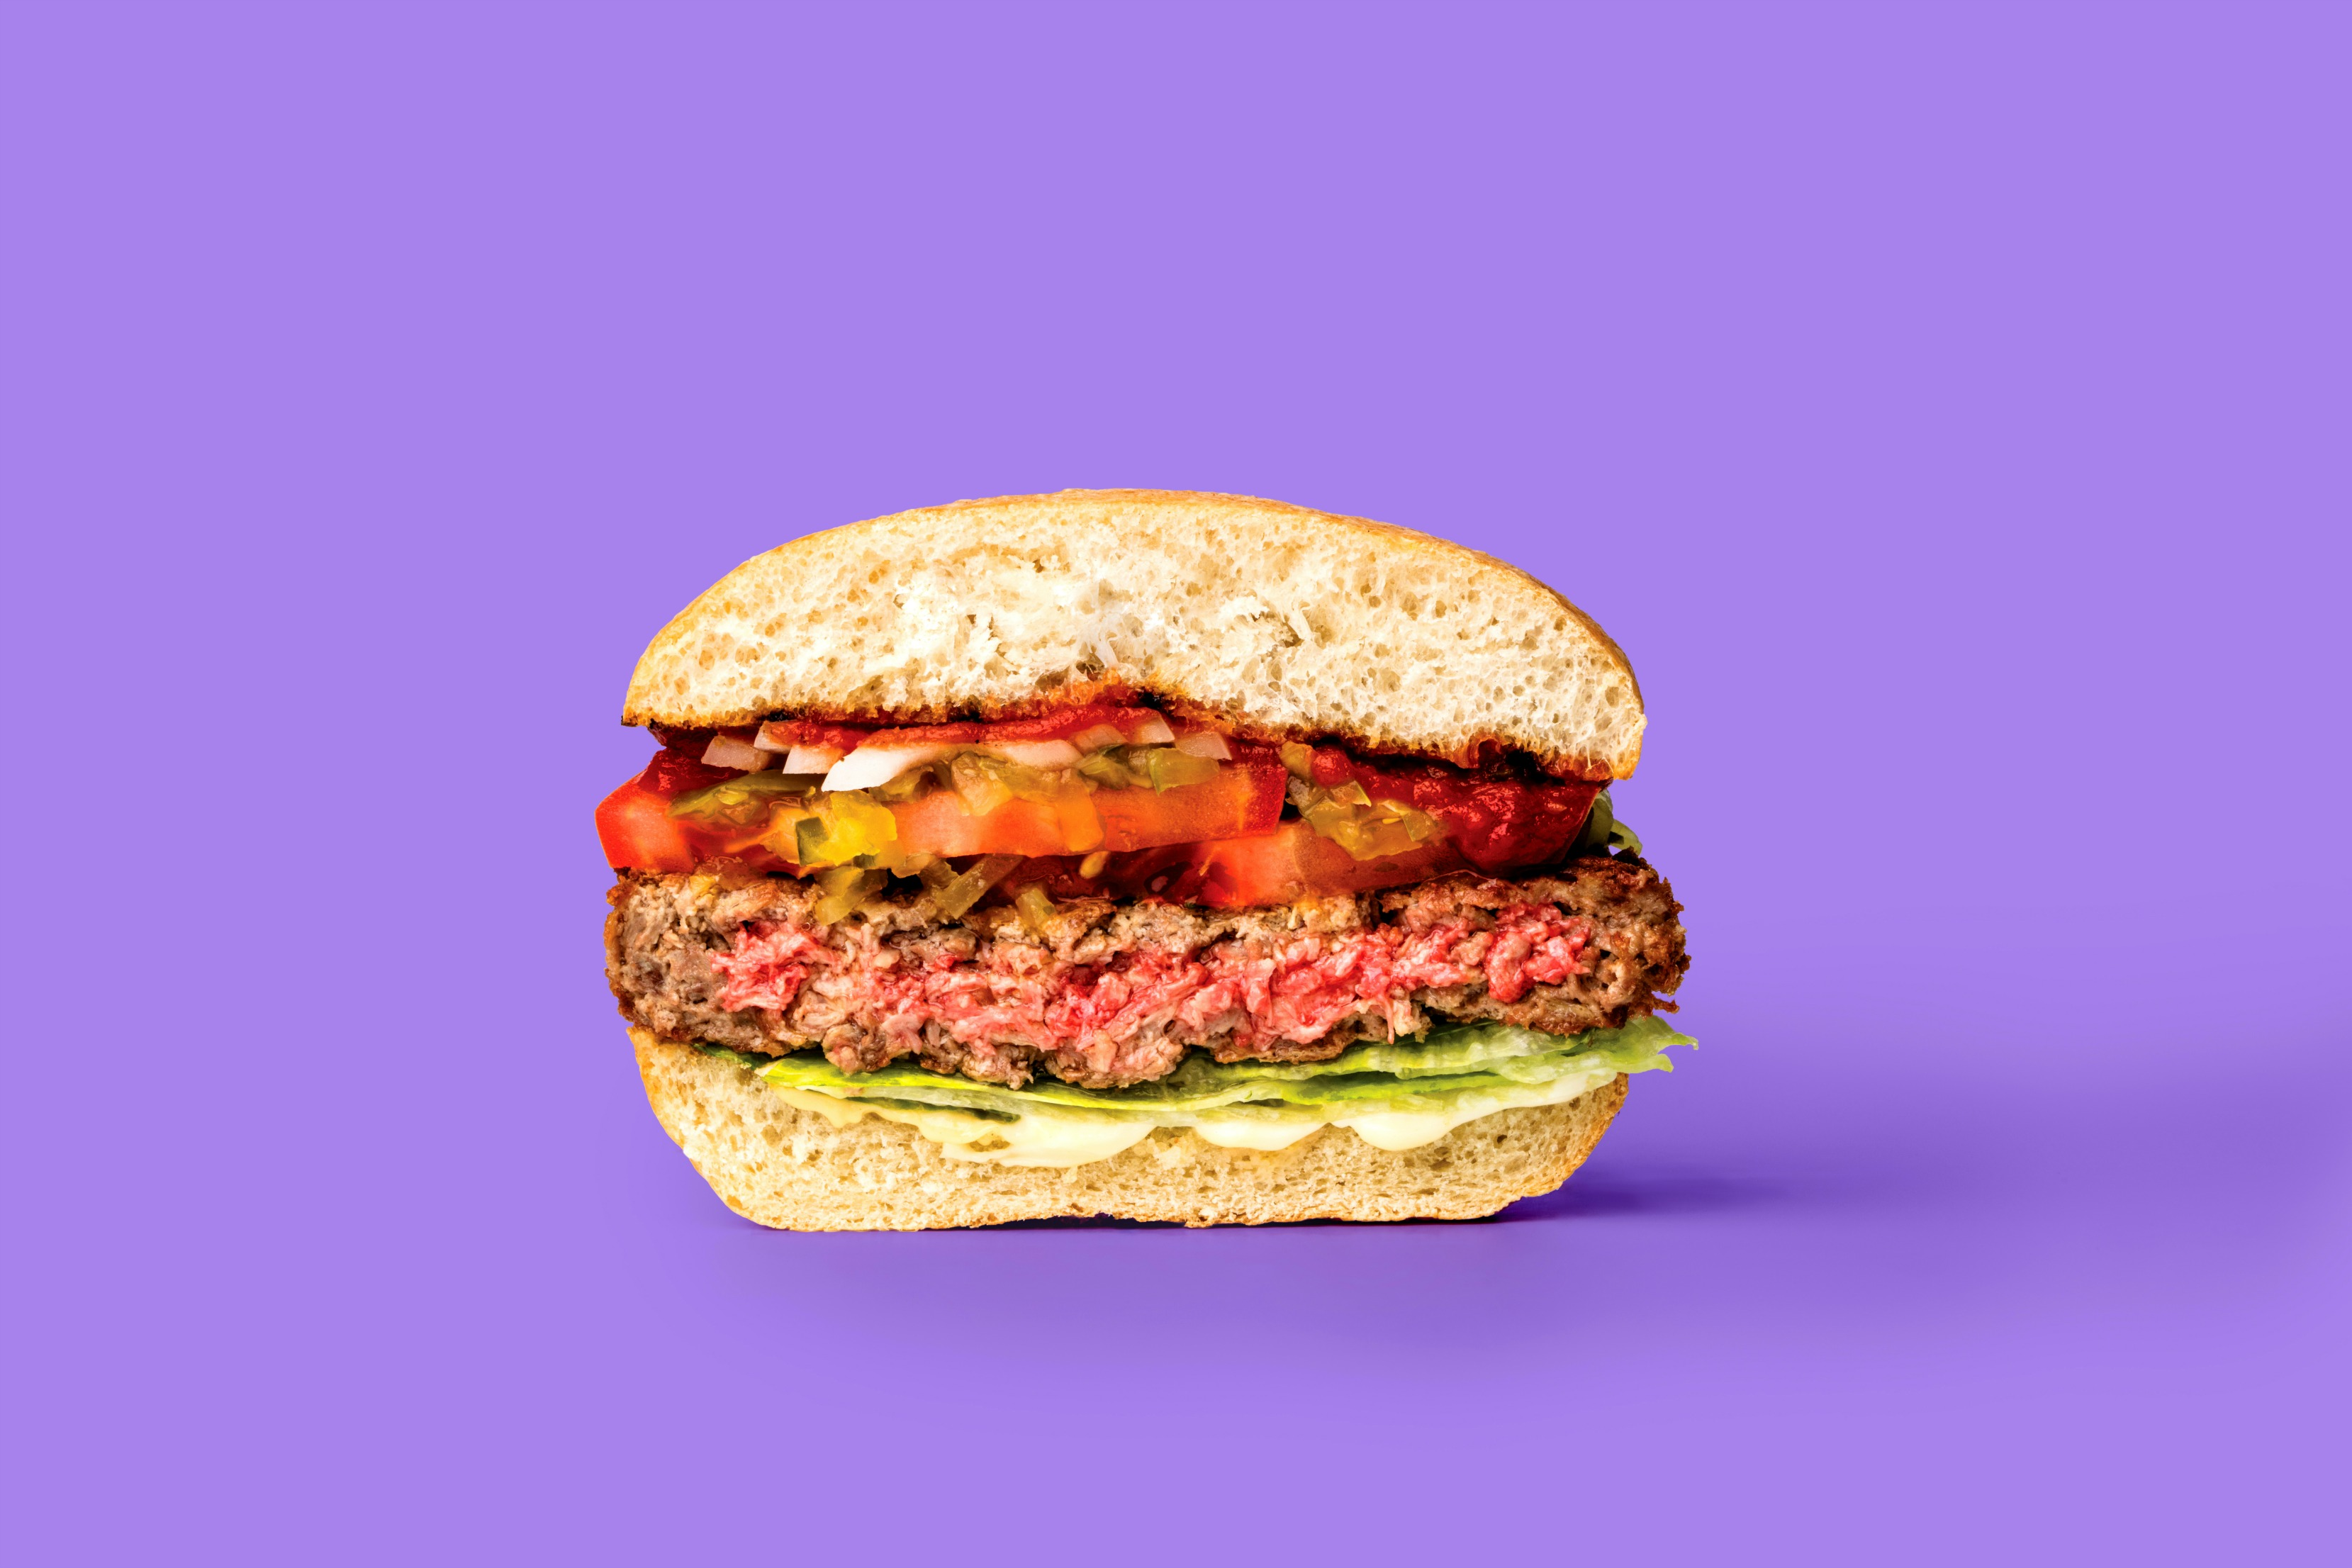 mrm franchise feed subway redesign more impossible at bareburger